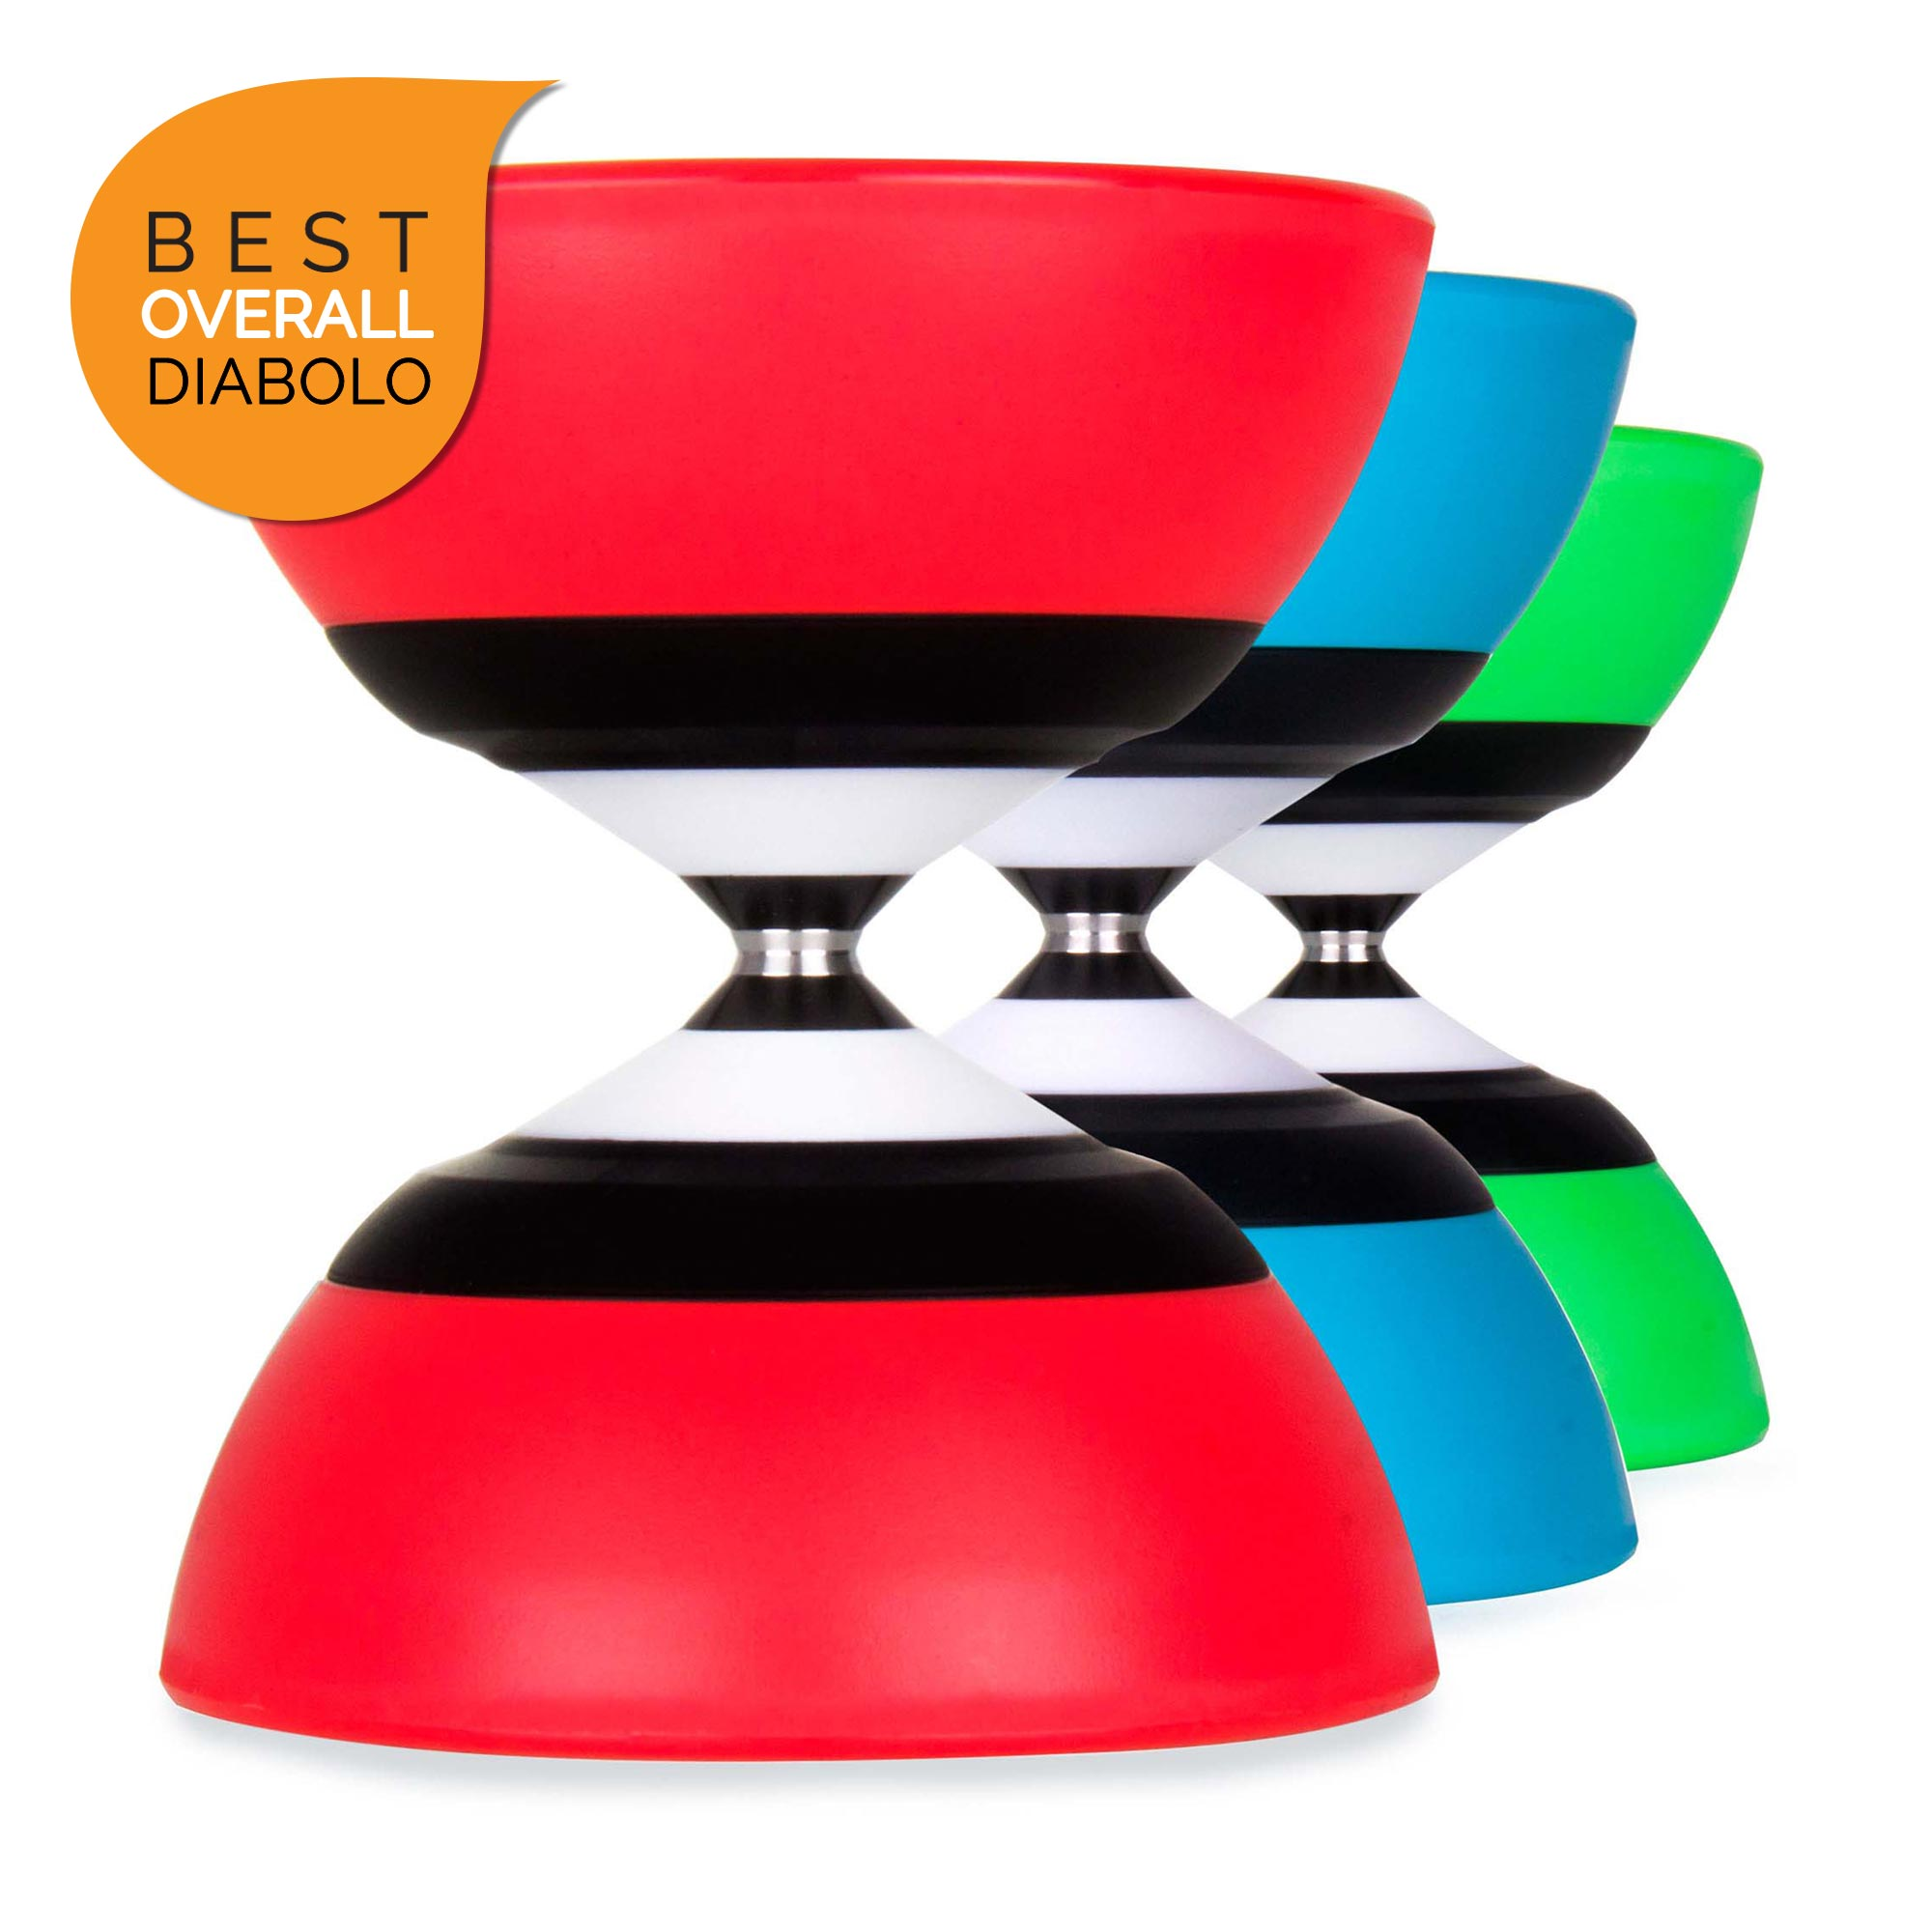 Sundia Evolution Diabolo - The Best Large Fixed Axle Diabolo